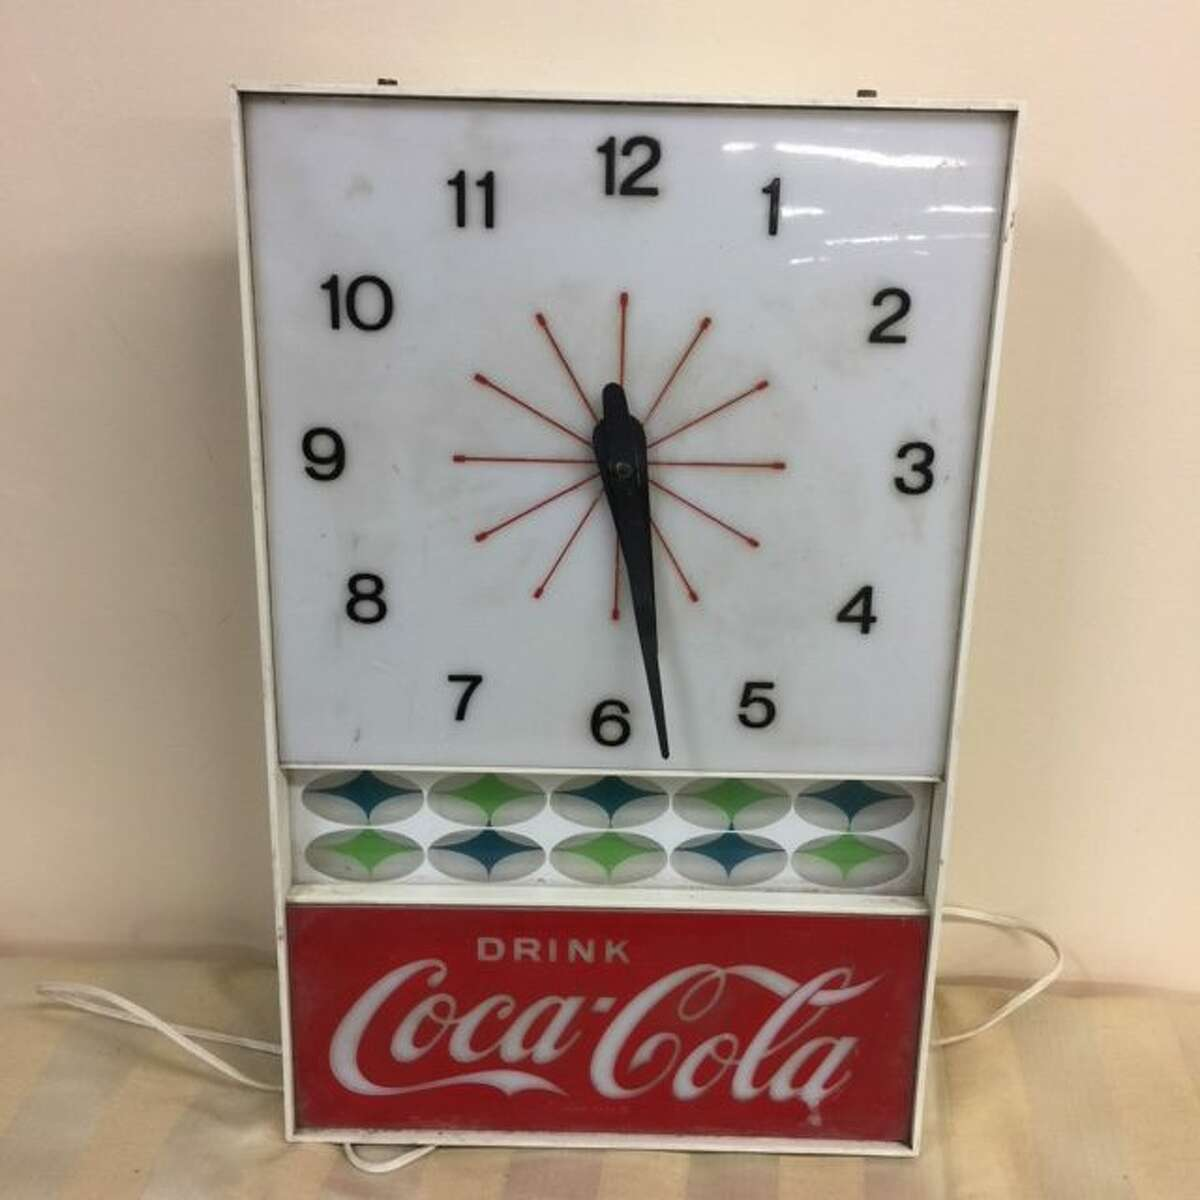 That's so vintage: Items like this old Coca-cola advertising clock will be on sale Saturday, Jan. 12, at the Ridgefield Thrift Shop on Governor Street.